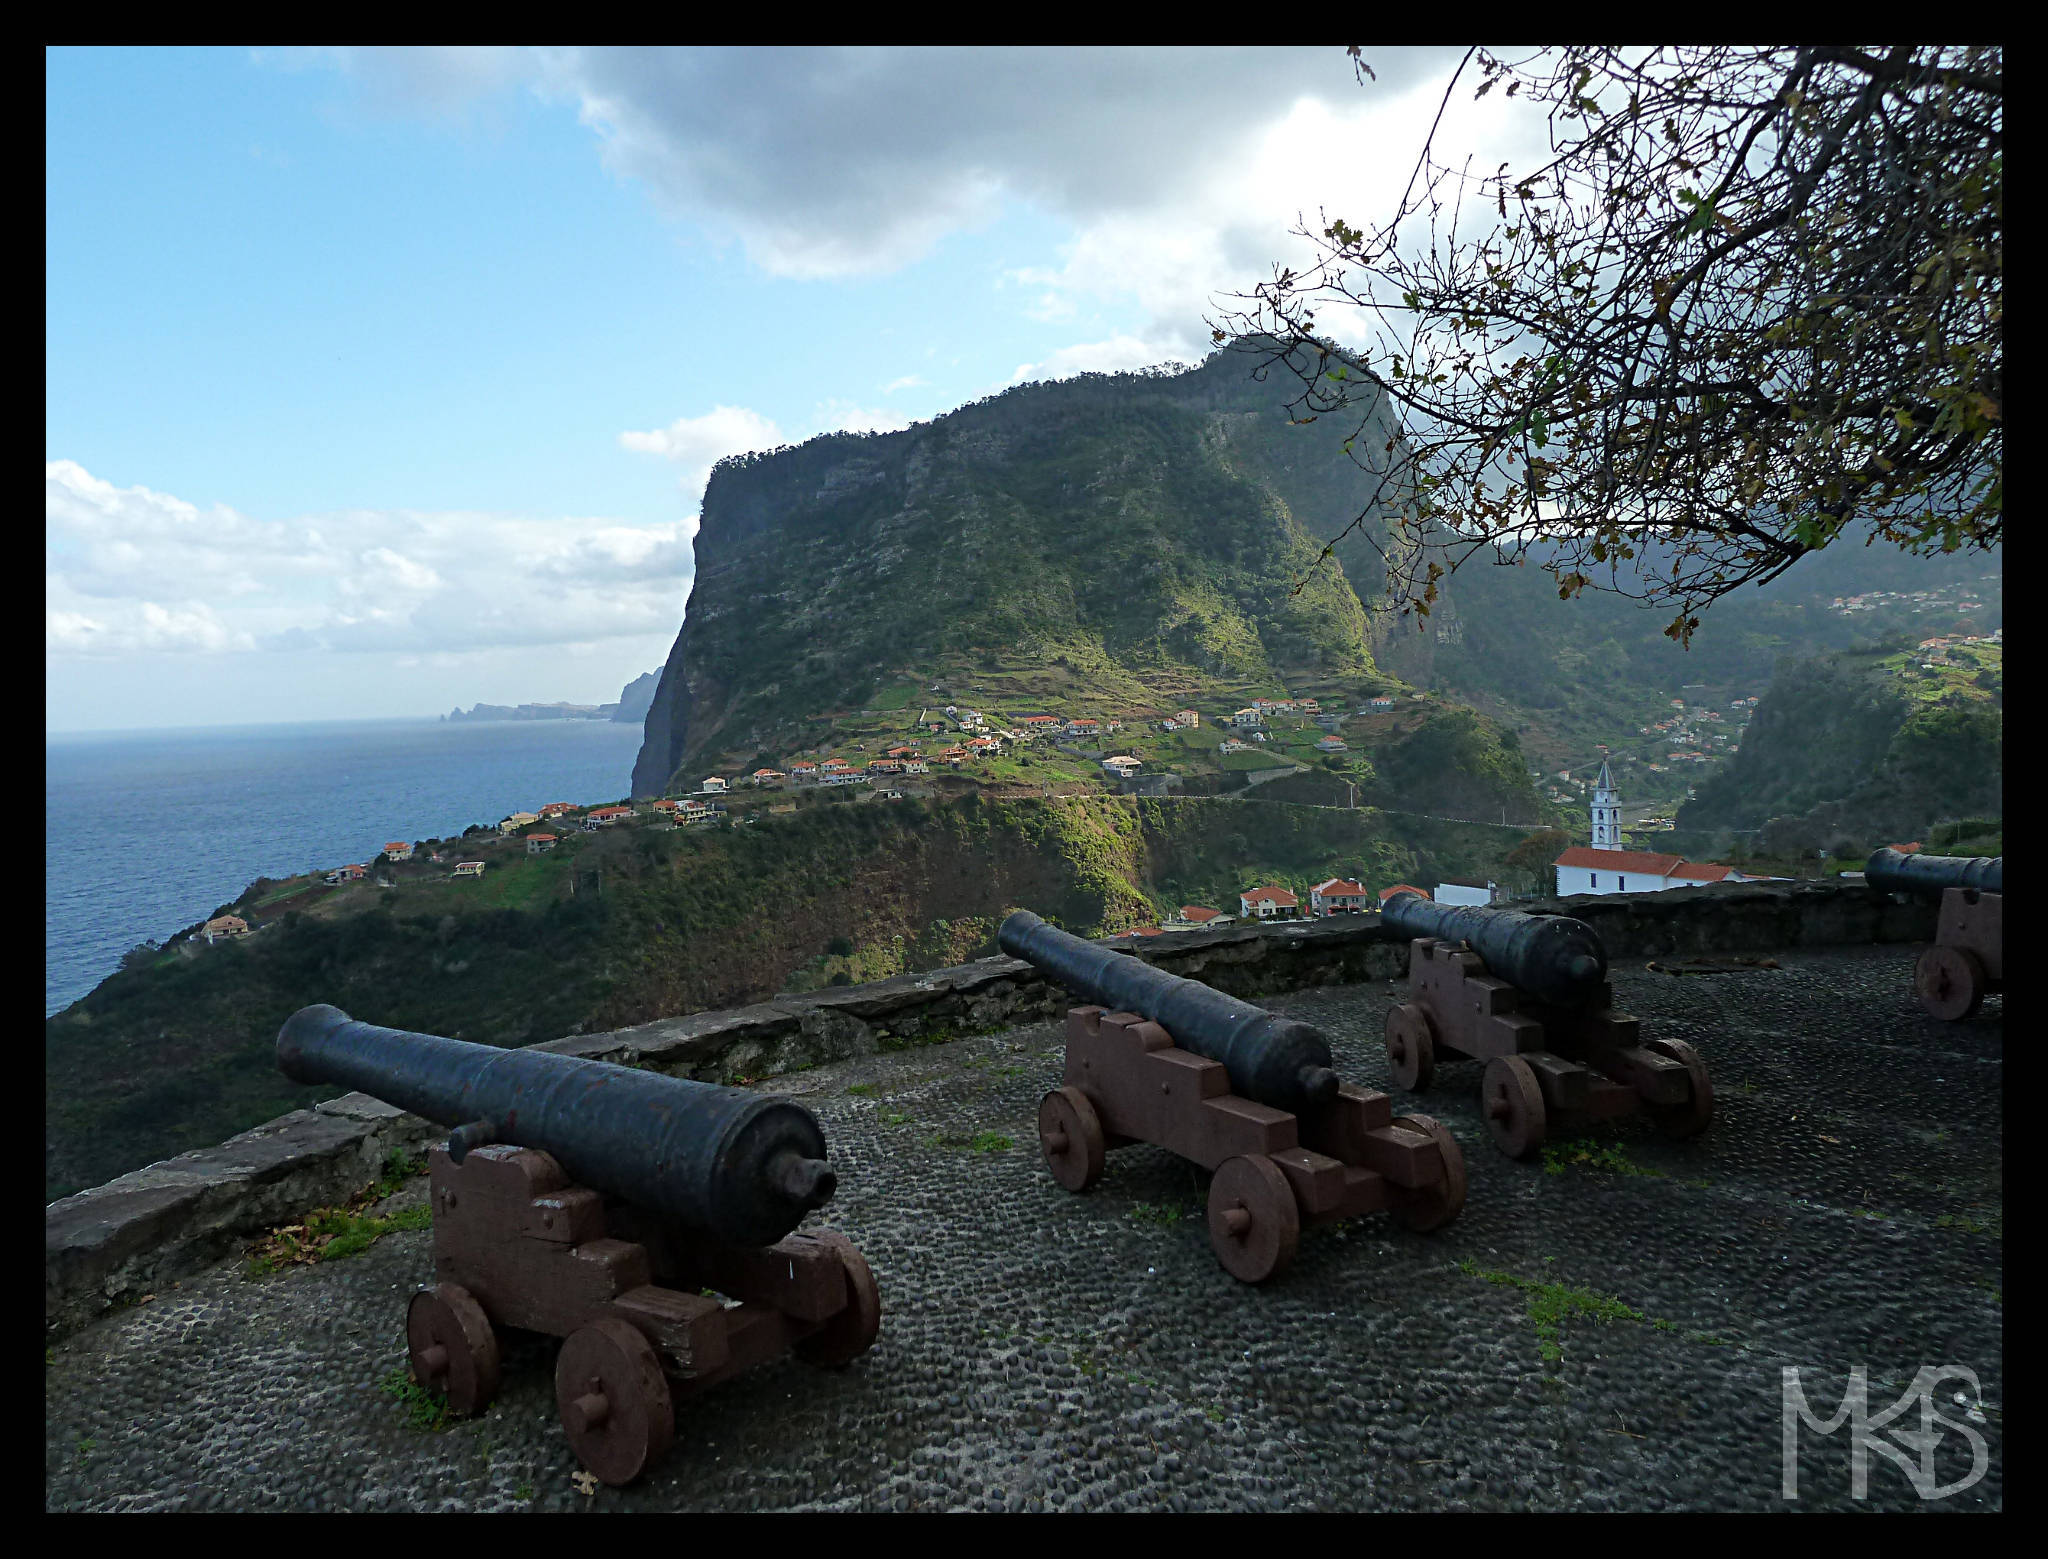 Cannons in Faial, Madeira